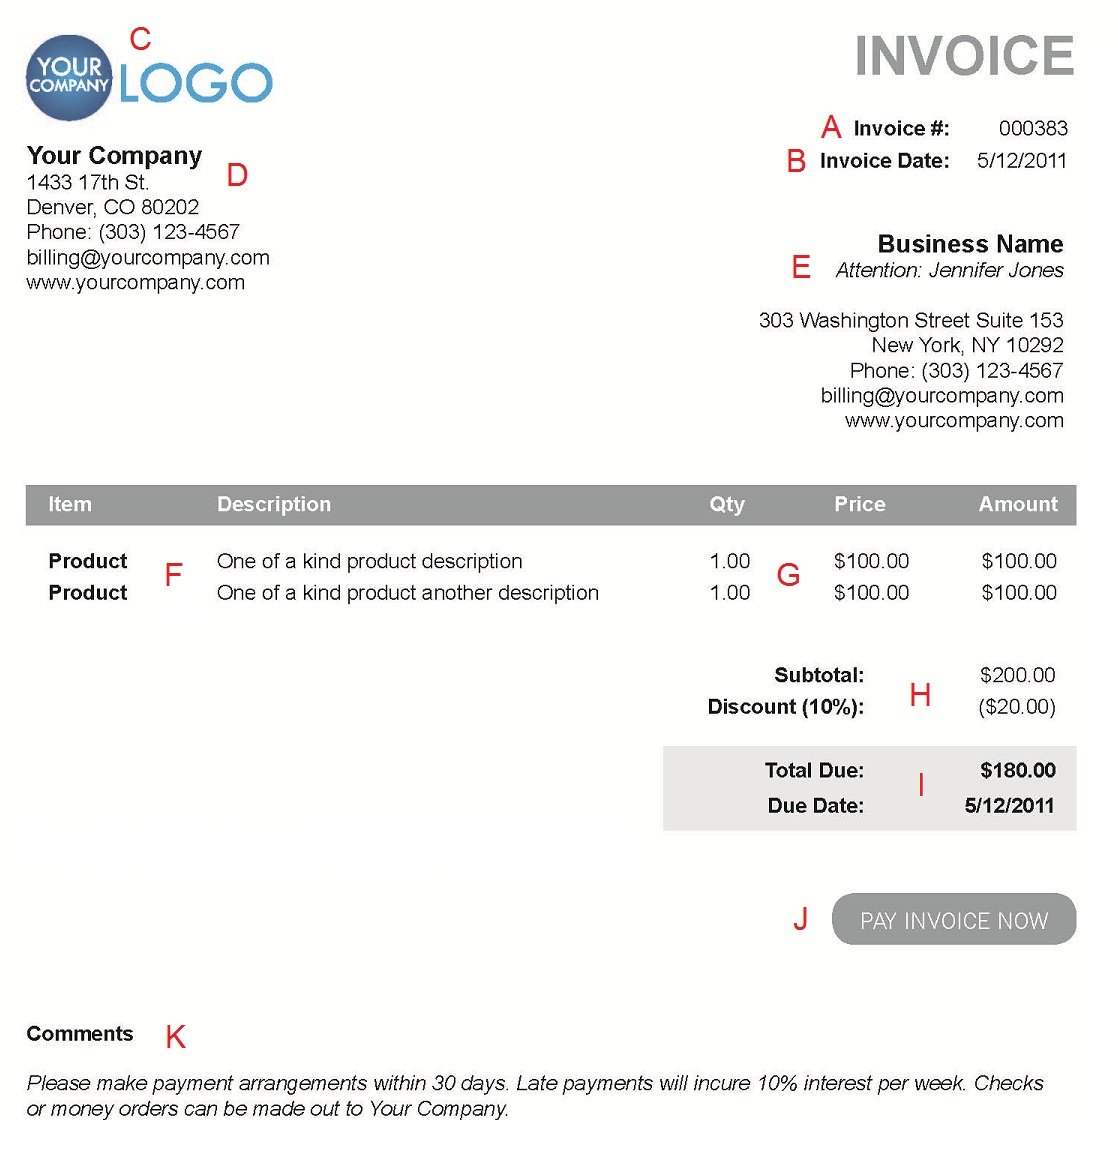 Aldiablosus  Marvelous The  Different Sections Of An Electronic Payment Invoice With Engaging A  With Awesome Ford Invoice Pricing Also Invoice Contract In Addition Microsoft Word Templates Invoice And Billing And Invoicing As Well As Ncr Invoice Pads Additionally Software For Invoices From Paysimplecom With Aldiablosus  Engaging The  Different Sections Of An Electronic Payment Invoice With Awesome A  And Marvelous Ford Invoice Pricing Also Invoice Contract In Addition Microsoft Word Templates Invoice From Paysimplecom